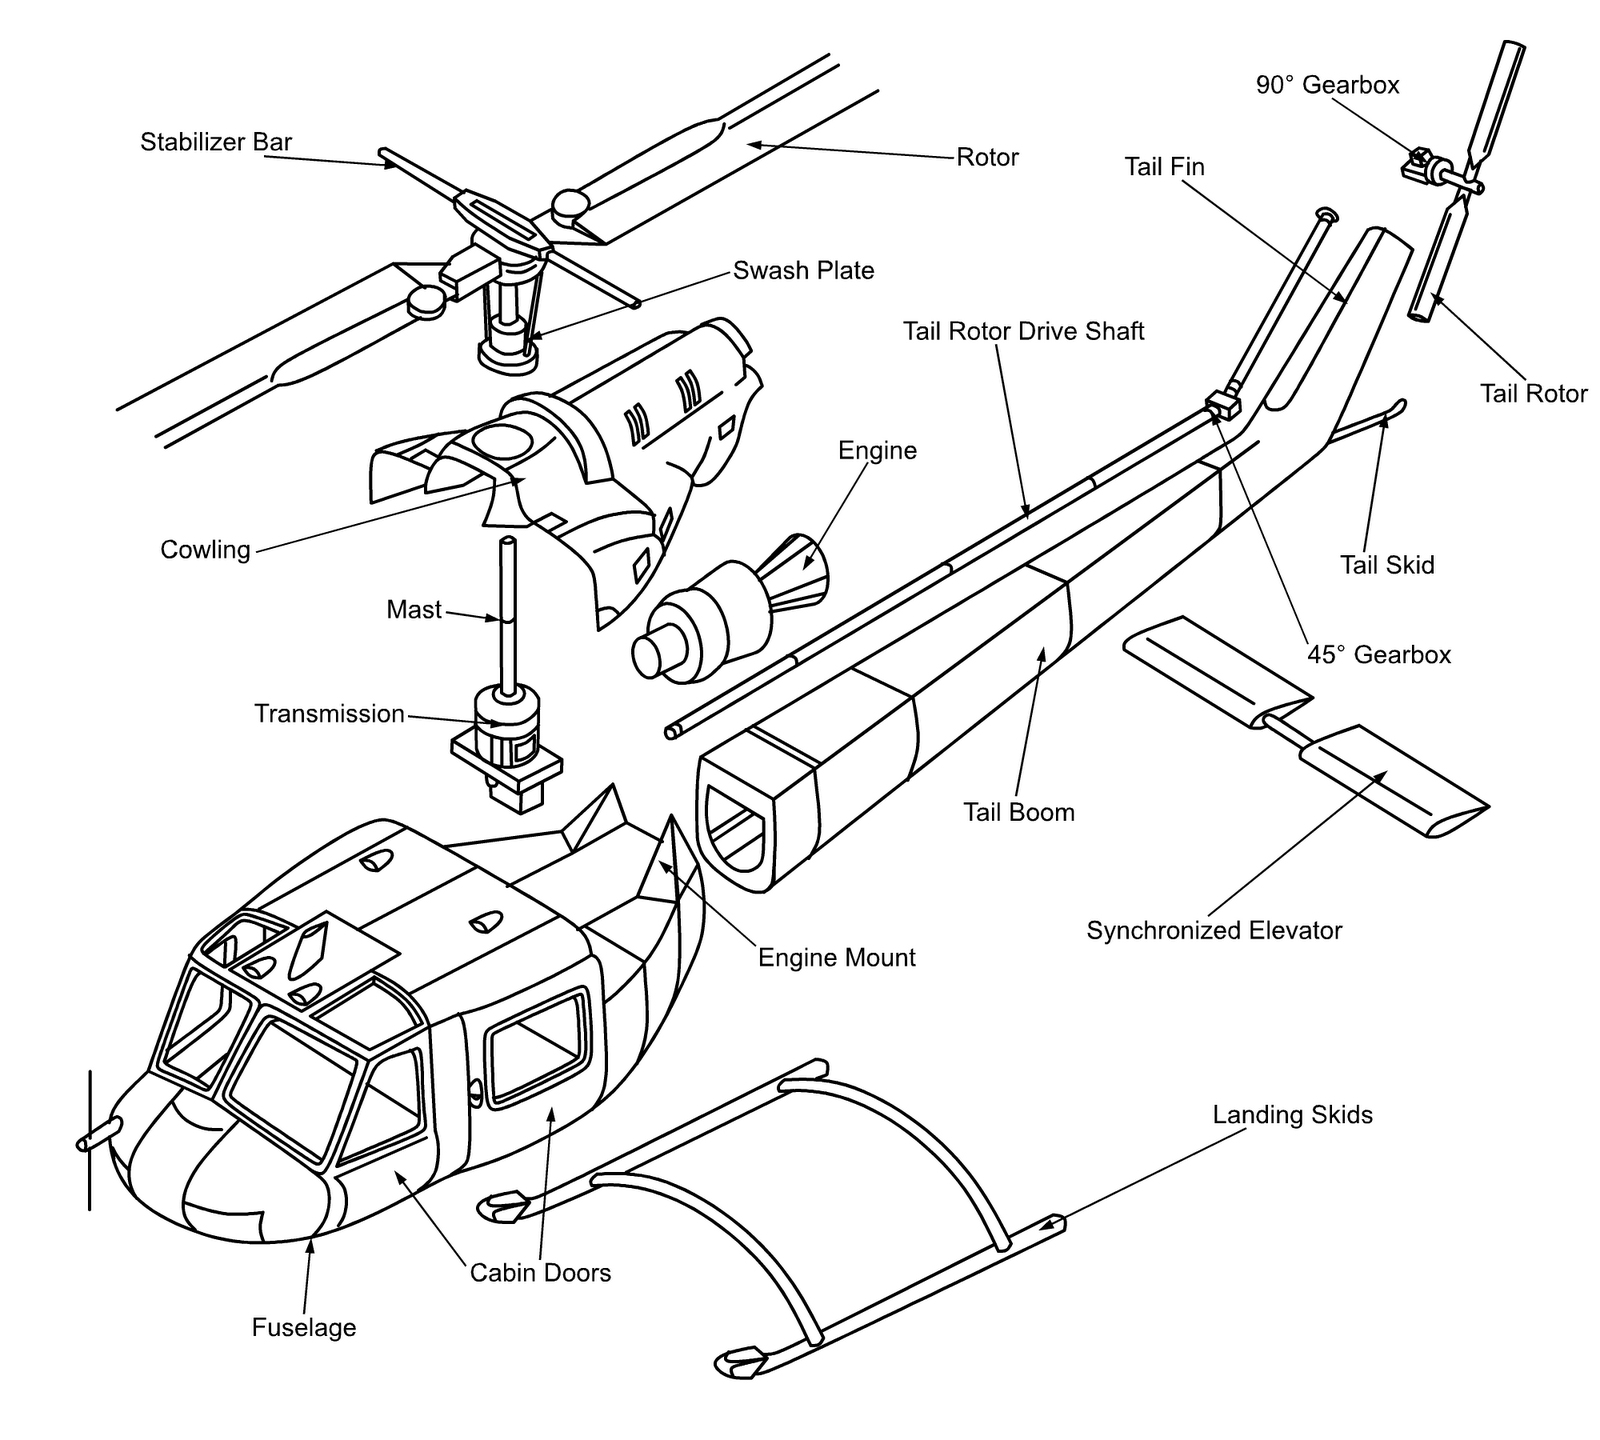 Helicopter Cyclic Components